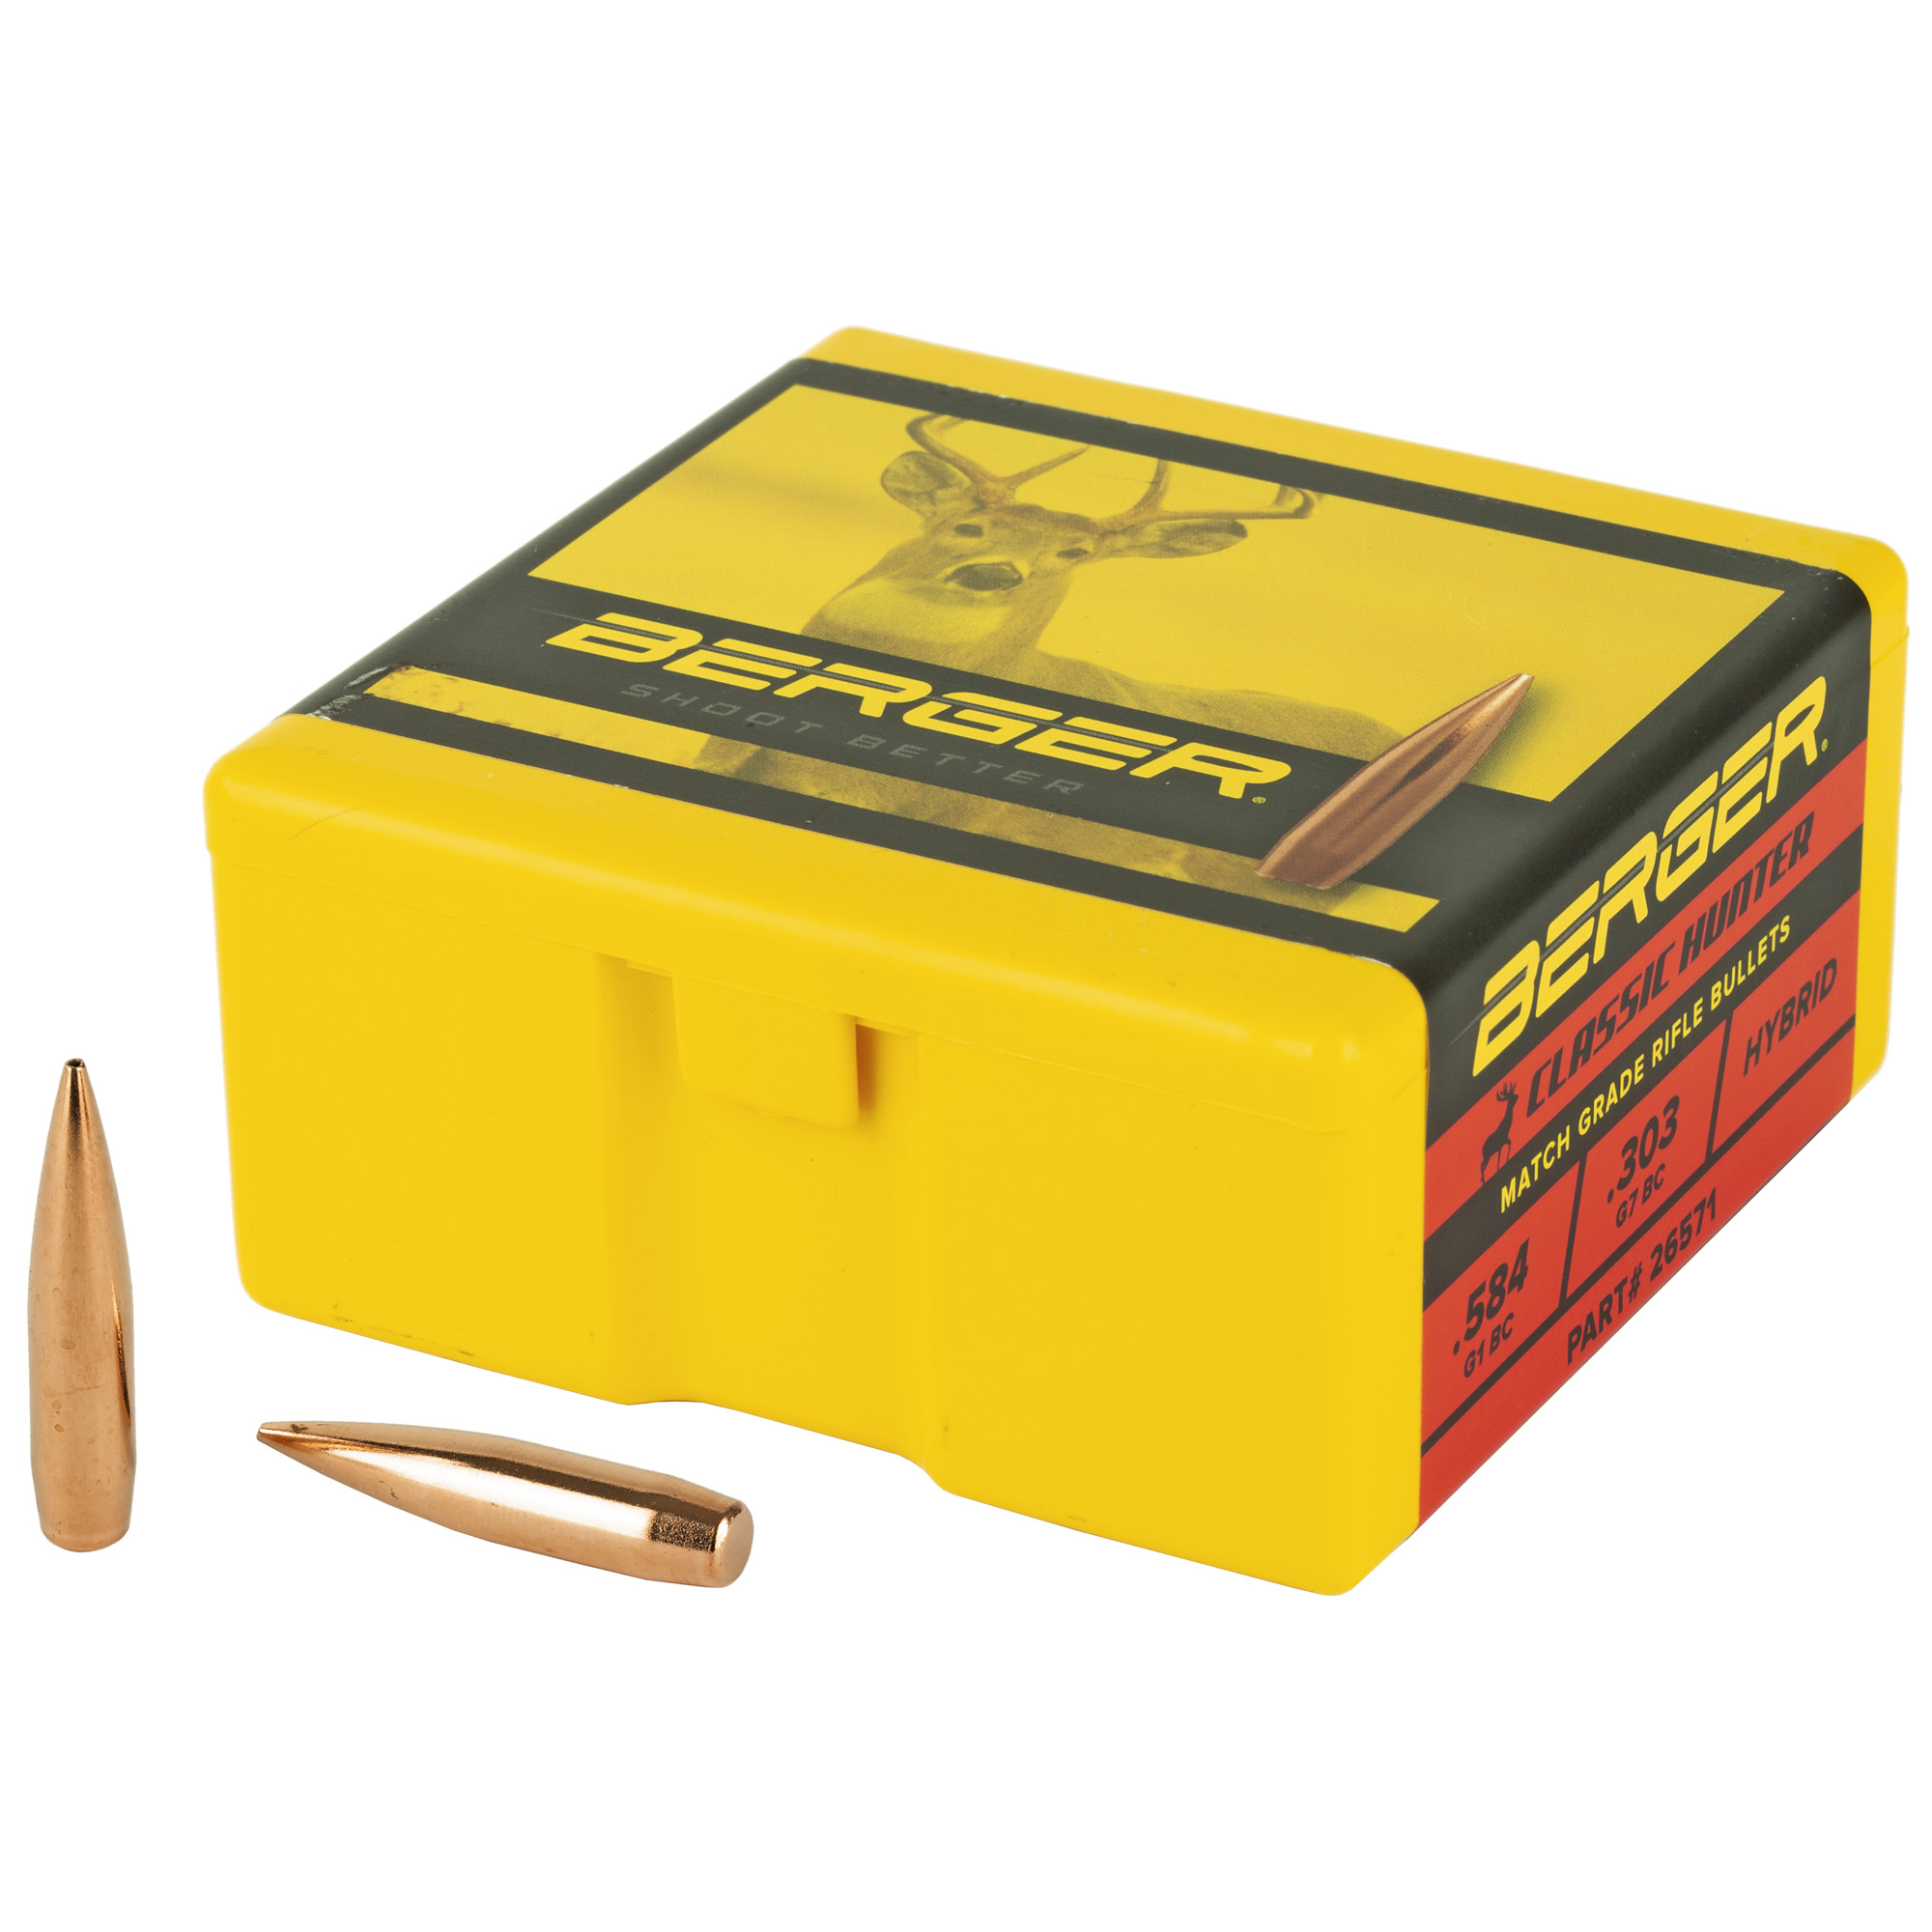 Berger .264 135g Clasc Hunter 100ct